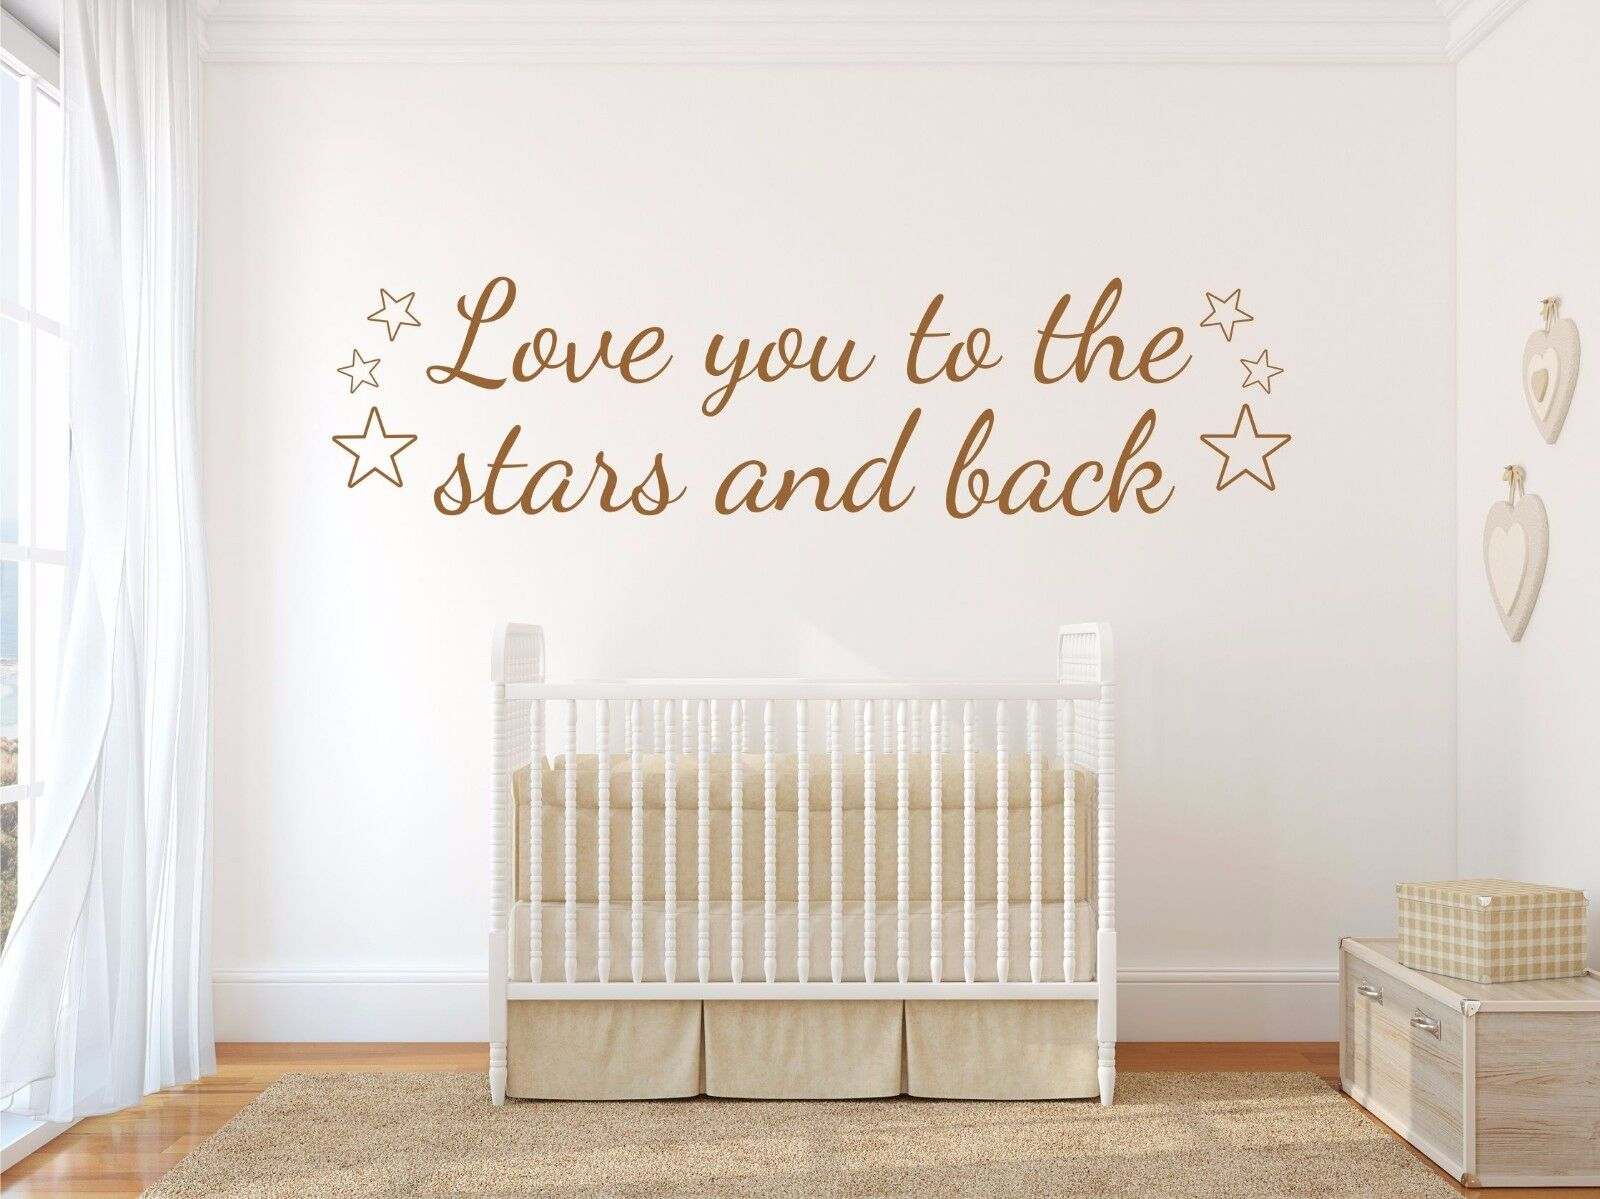 Love You To The Stars And Back Nursery Wall Sticker Decal Art 3 Sizes 12  Colours